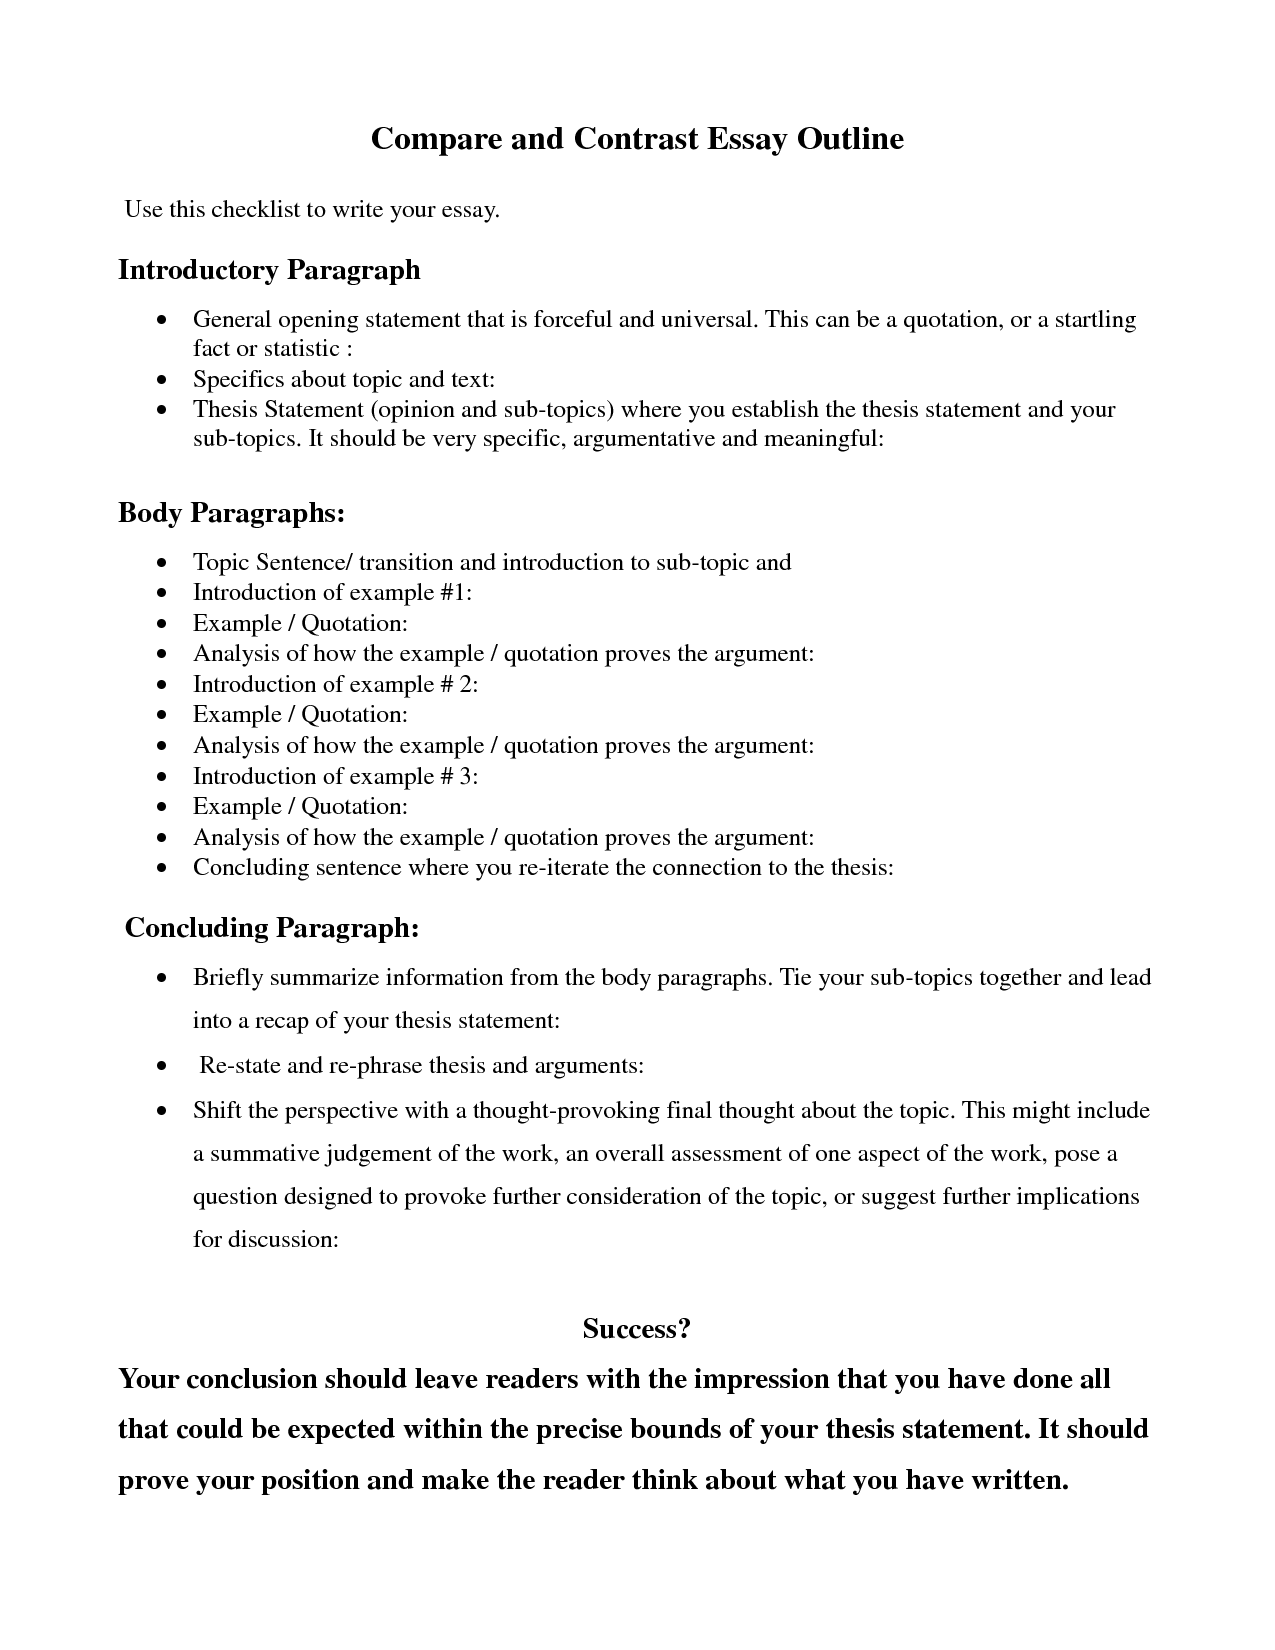 001 Essay Example How To Outline Compare And Awesome A Contrast Create An For Full